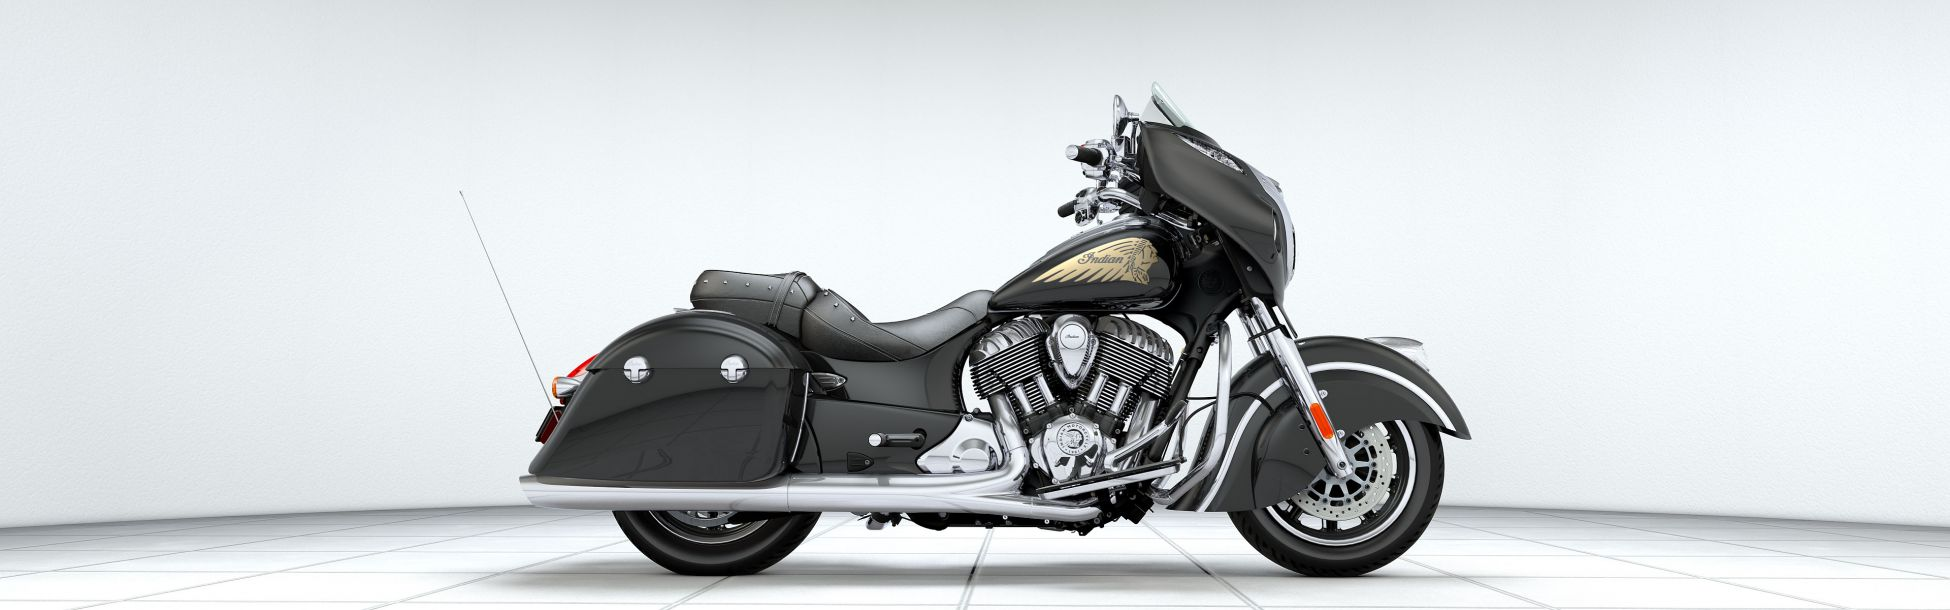 cruisers-indian-chieftain